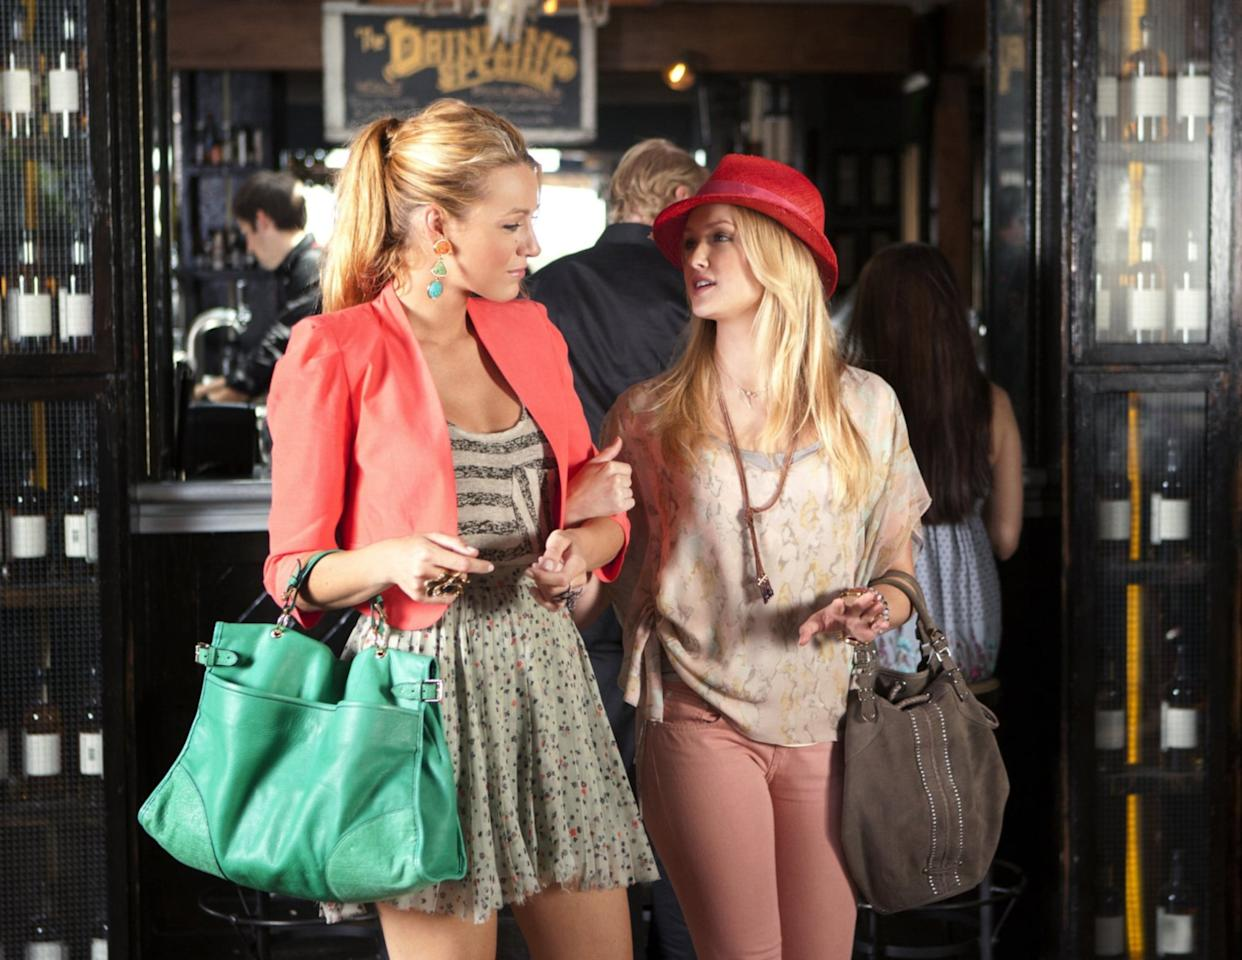 "<p>For the ultimate dose of drama, you have to watch <b>Gossip Girl</b> if you haven't already. It's much like <b>Elite</b> and will satiate your need for cat fights and pettiness that you love.</p> <p><a href=""https://www.netflix.com/watch/70212576?trackId=13752289&amp;tctx=0%2C0%2C7a5d52a2b5a3132fa36b7fd059f9f24b3e40f2e6%3A9bba421045018409bbcf23217a5f1cc5890d1d01%2C7a5d52a2b5a3132fa36b7fd059f9f24b3e40f2e6%3A9bba421045018409bbcf23217a5f1cc5890d1d01%2C%2C"" target=""_blank"" class=""ga-track"" data-ga-category=""Related"" data-ga-label=""https://www.netflix.com/watch/70212576?trackId=13752289&amp;tctx=0%2C0%2C7a5d52a2b5a3132fa36b7fd059f9f24b3e40f2e6%3A9bba421045018409bbcf23217a5f1cc5890d1d01%2C7a5d52a2b5a3132fa36b7fd059f9f24b3e40f2e6%3A9bba421045018409bbcf23217a5f1cc5890d1d01%2C%2C"" data-ga-action=""In-Line Links"">Watch <b>Gossip Girl</b> on Netflix</a>.</p>"